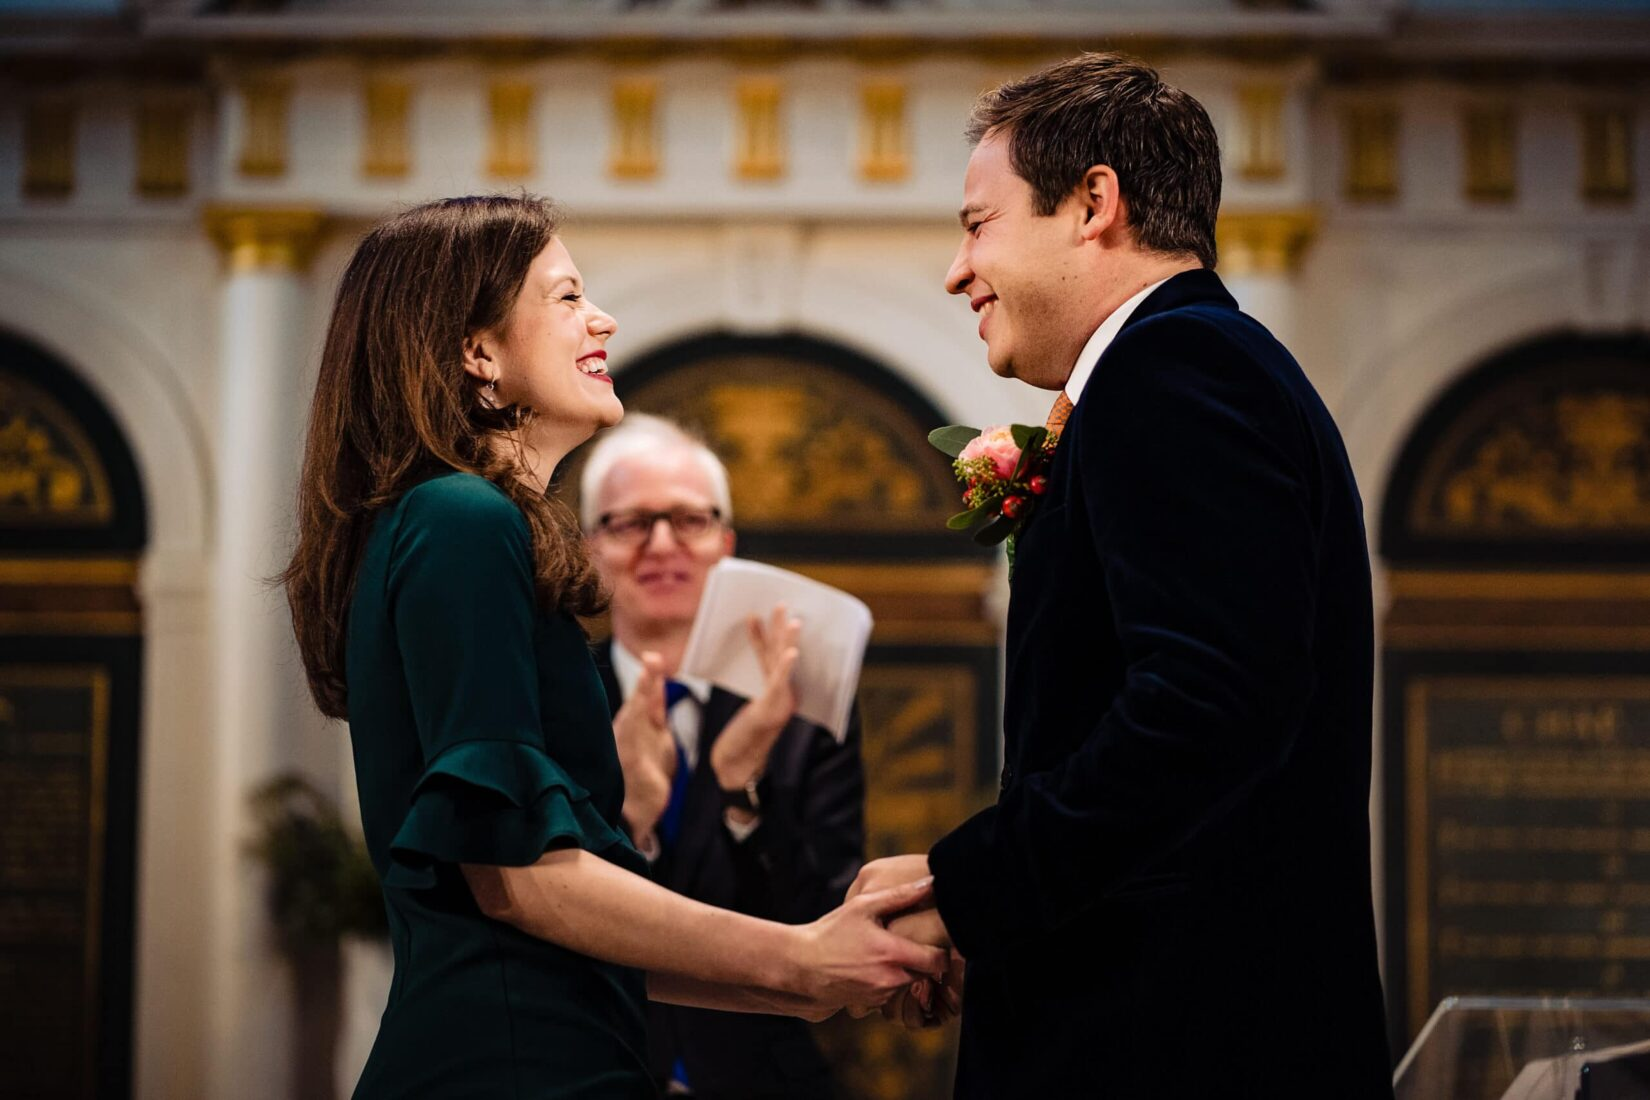 Bride and groom smile broadly at each other at their Saint James Clerkenwell wedding ceremony